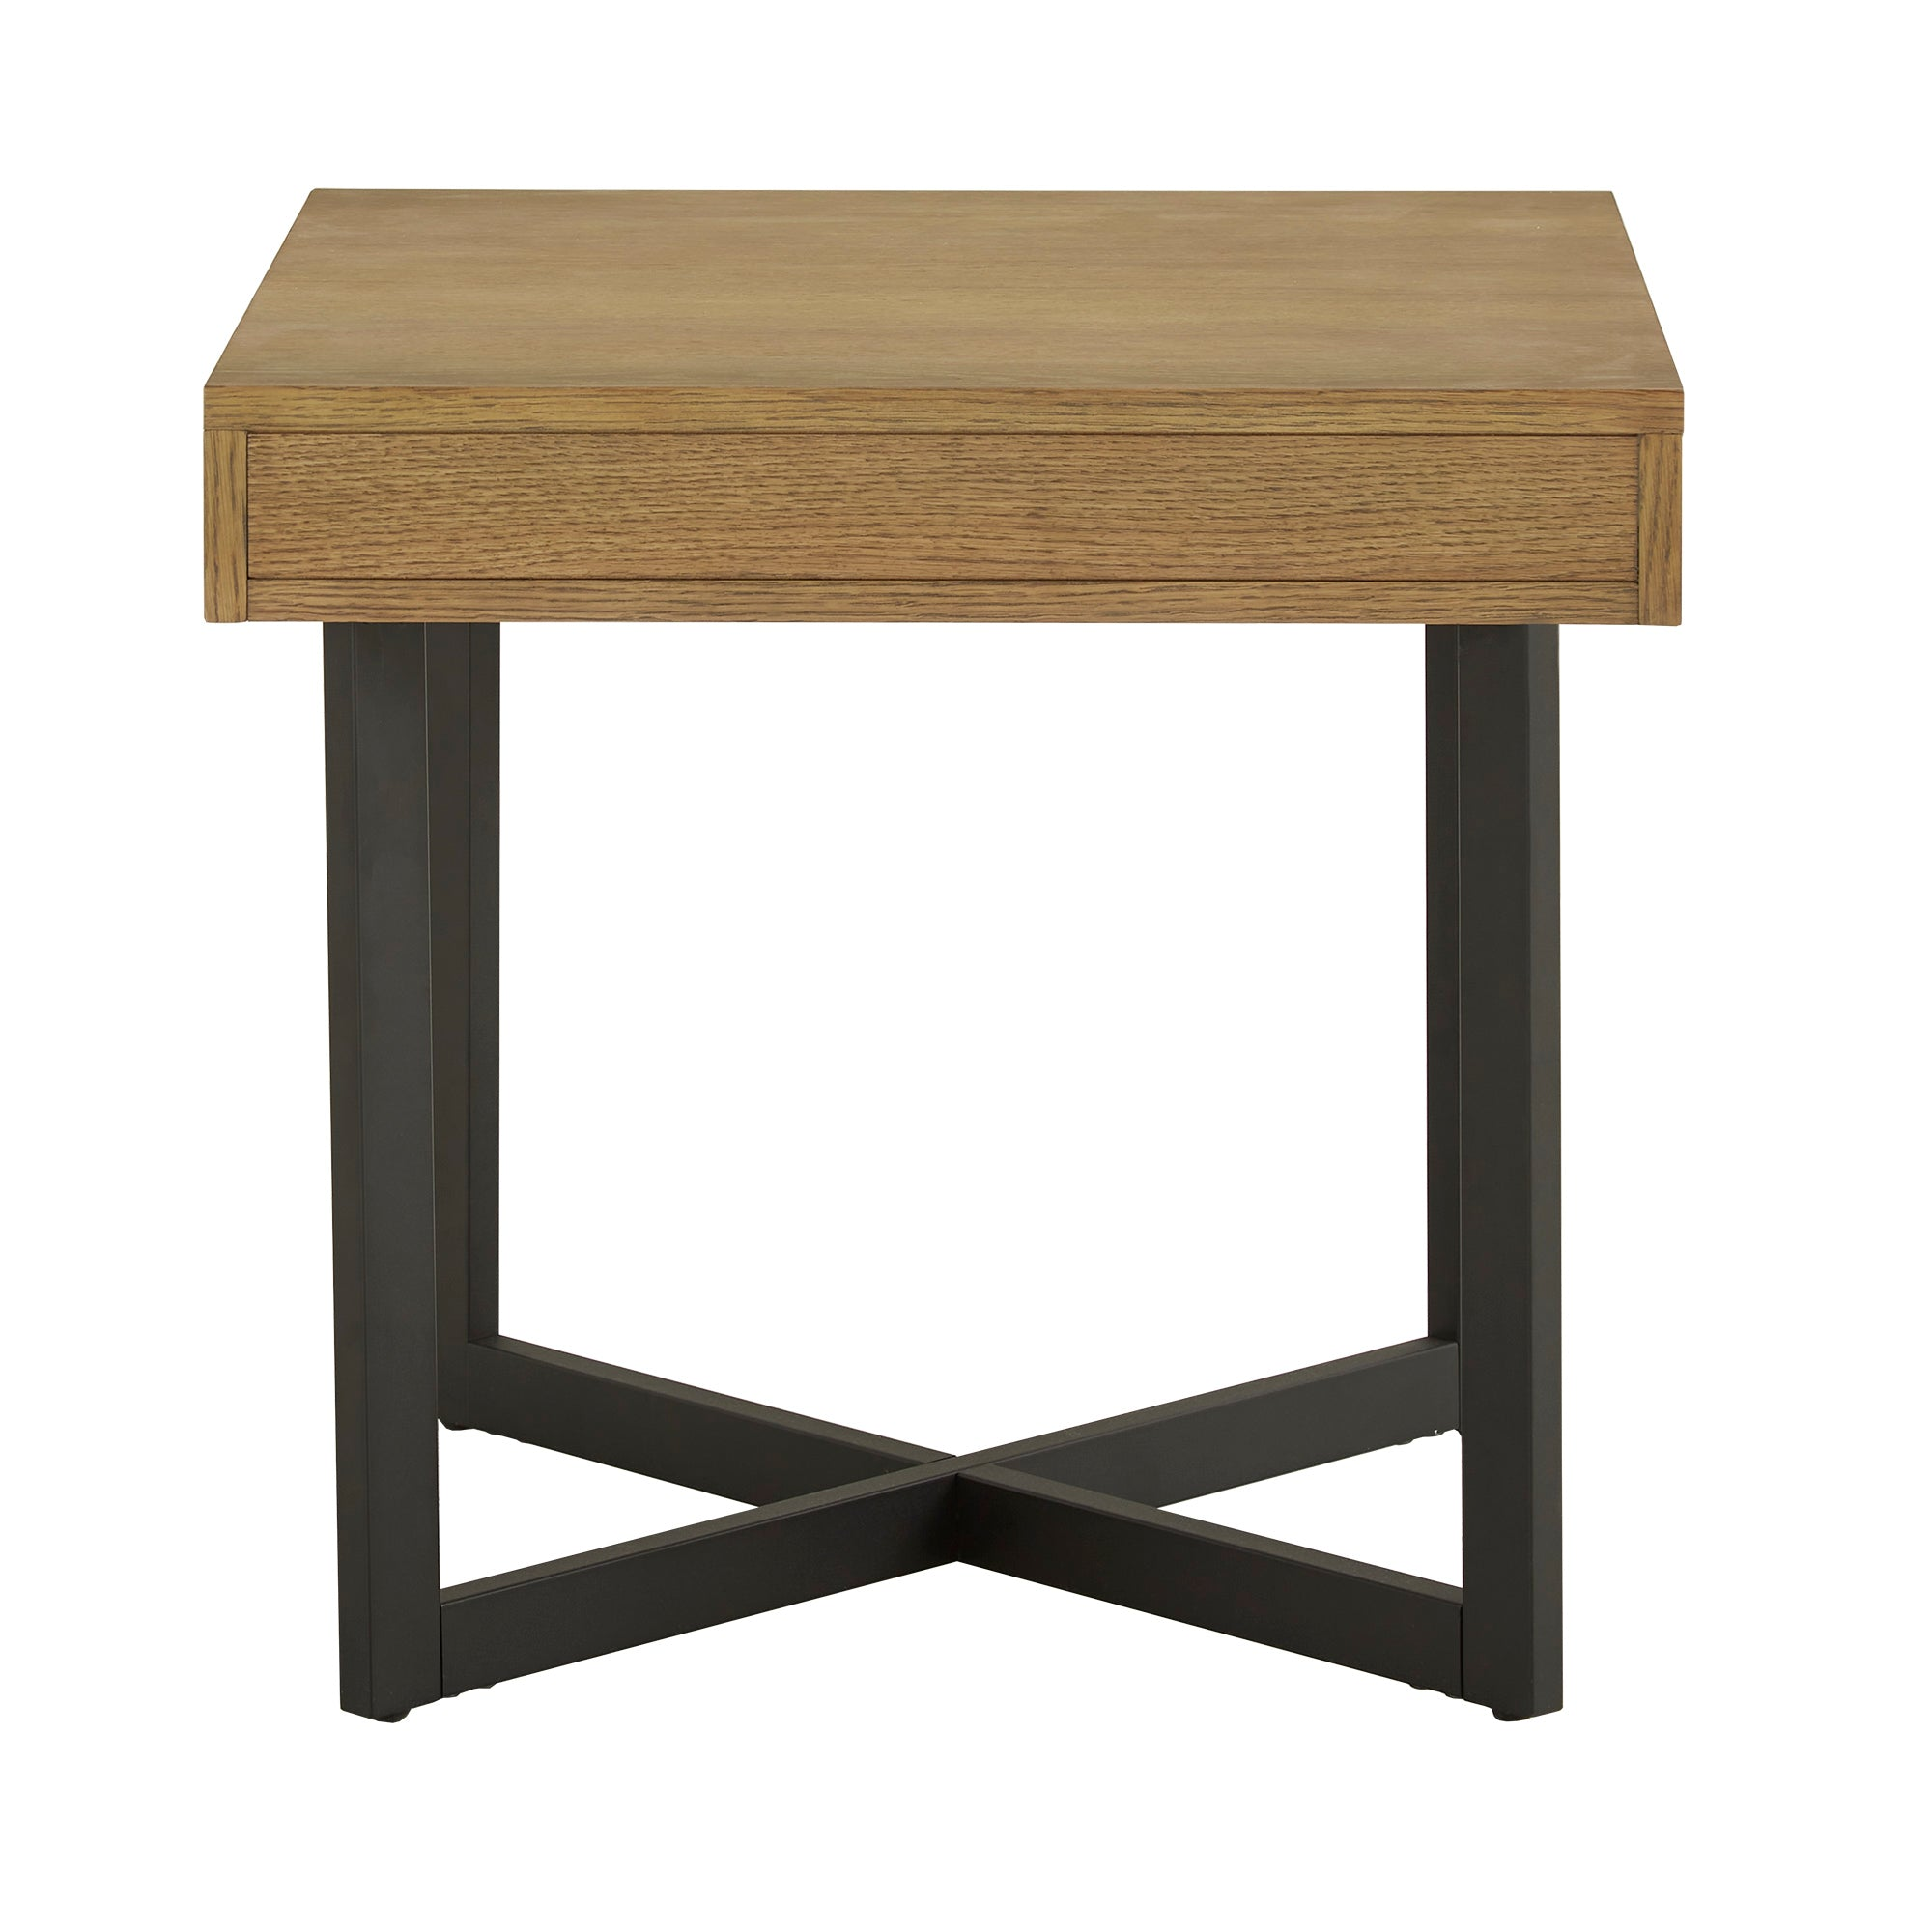 Wood Finish End Table with One Drawer - Oak Finish